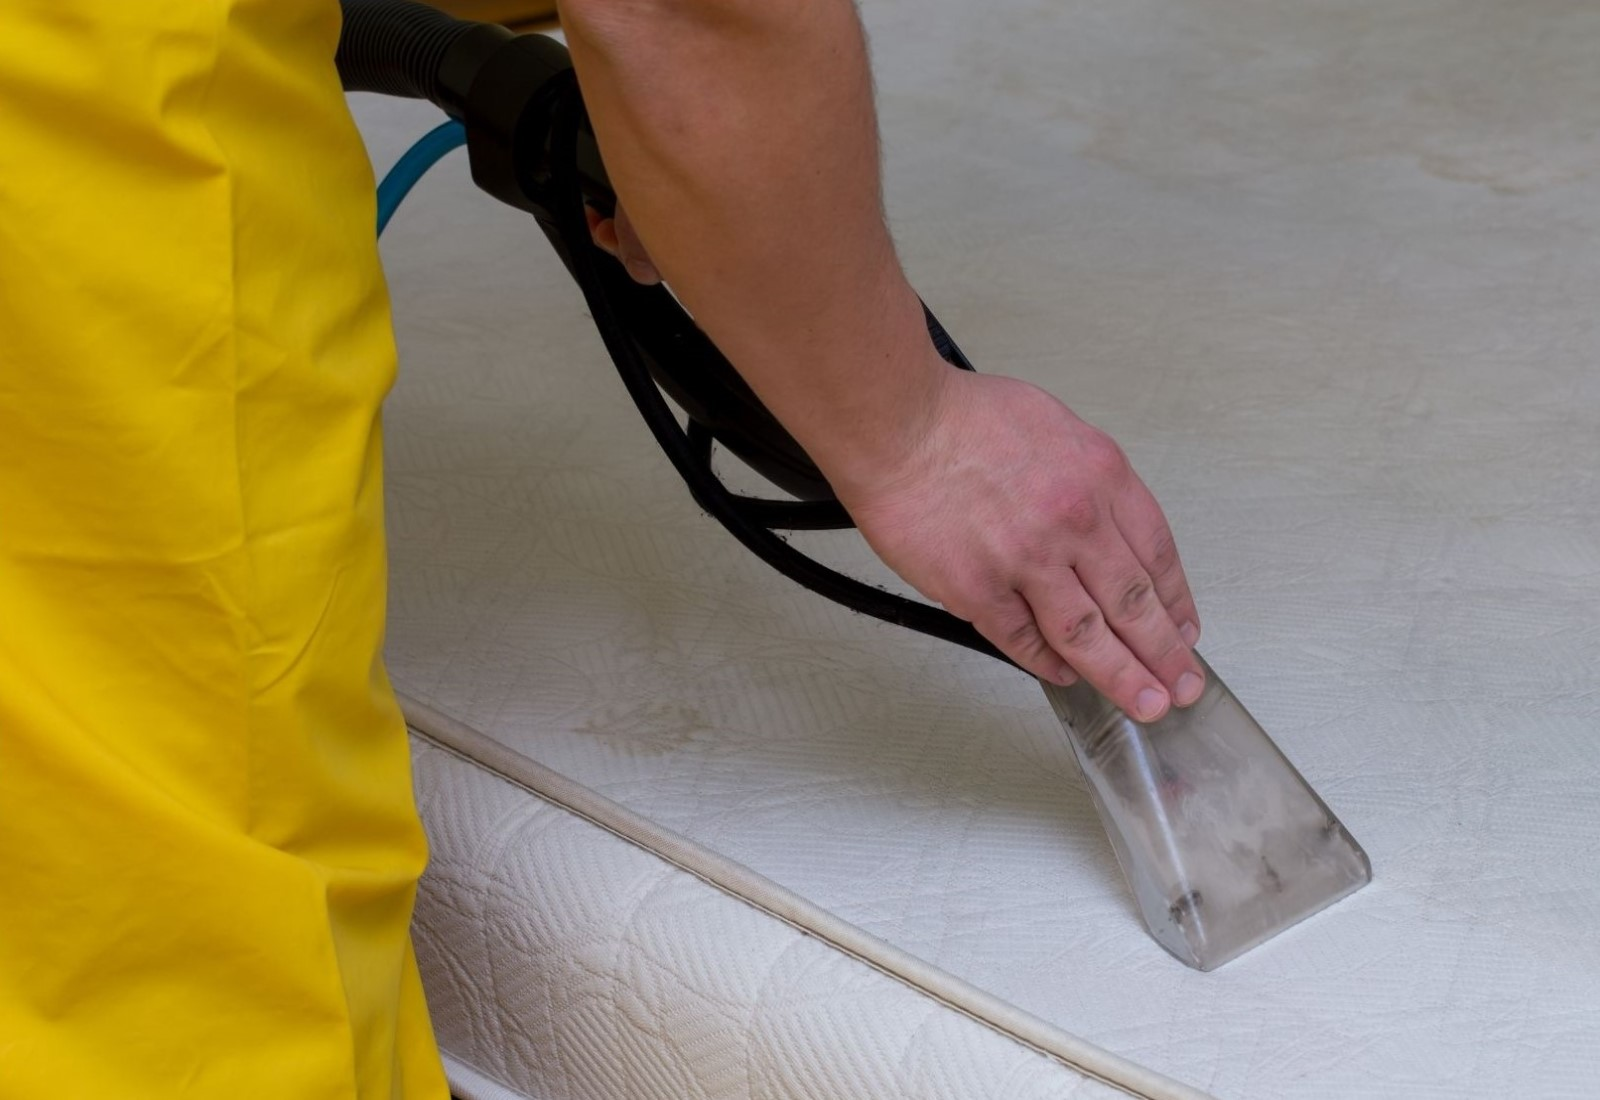 Commercial Mattress Cleaning Sanitizing